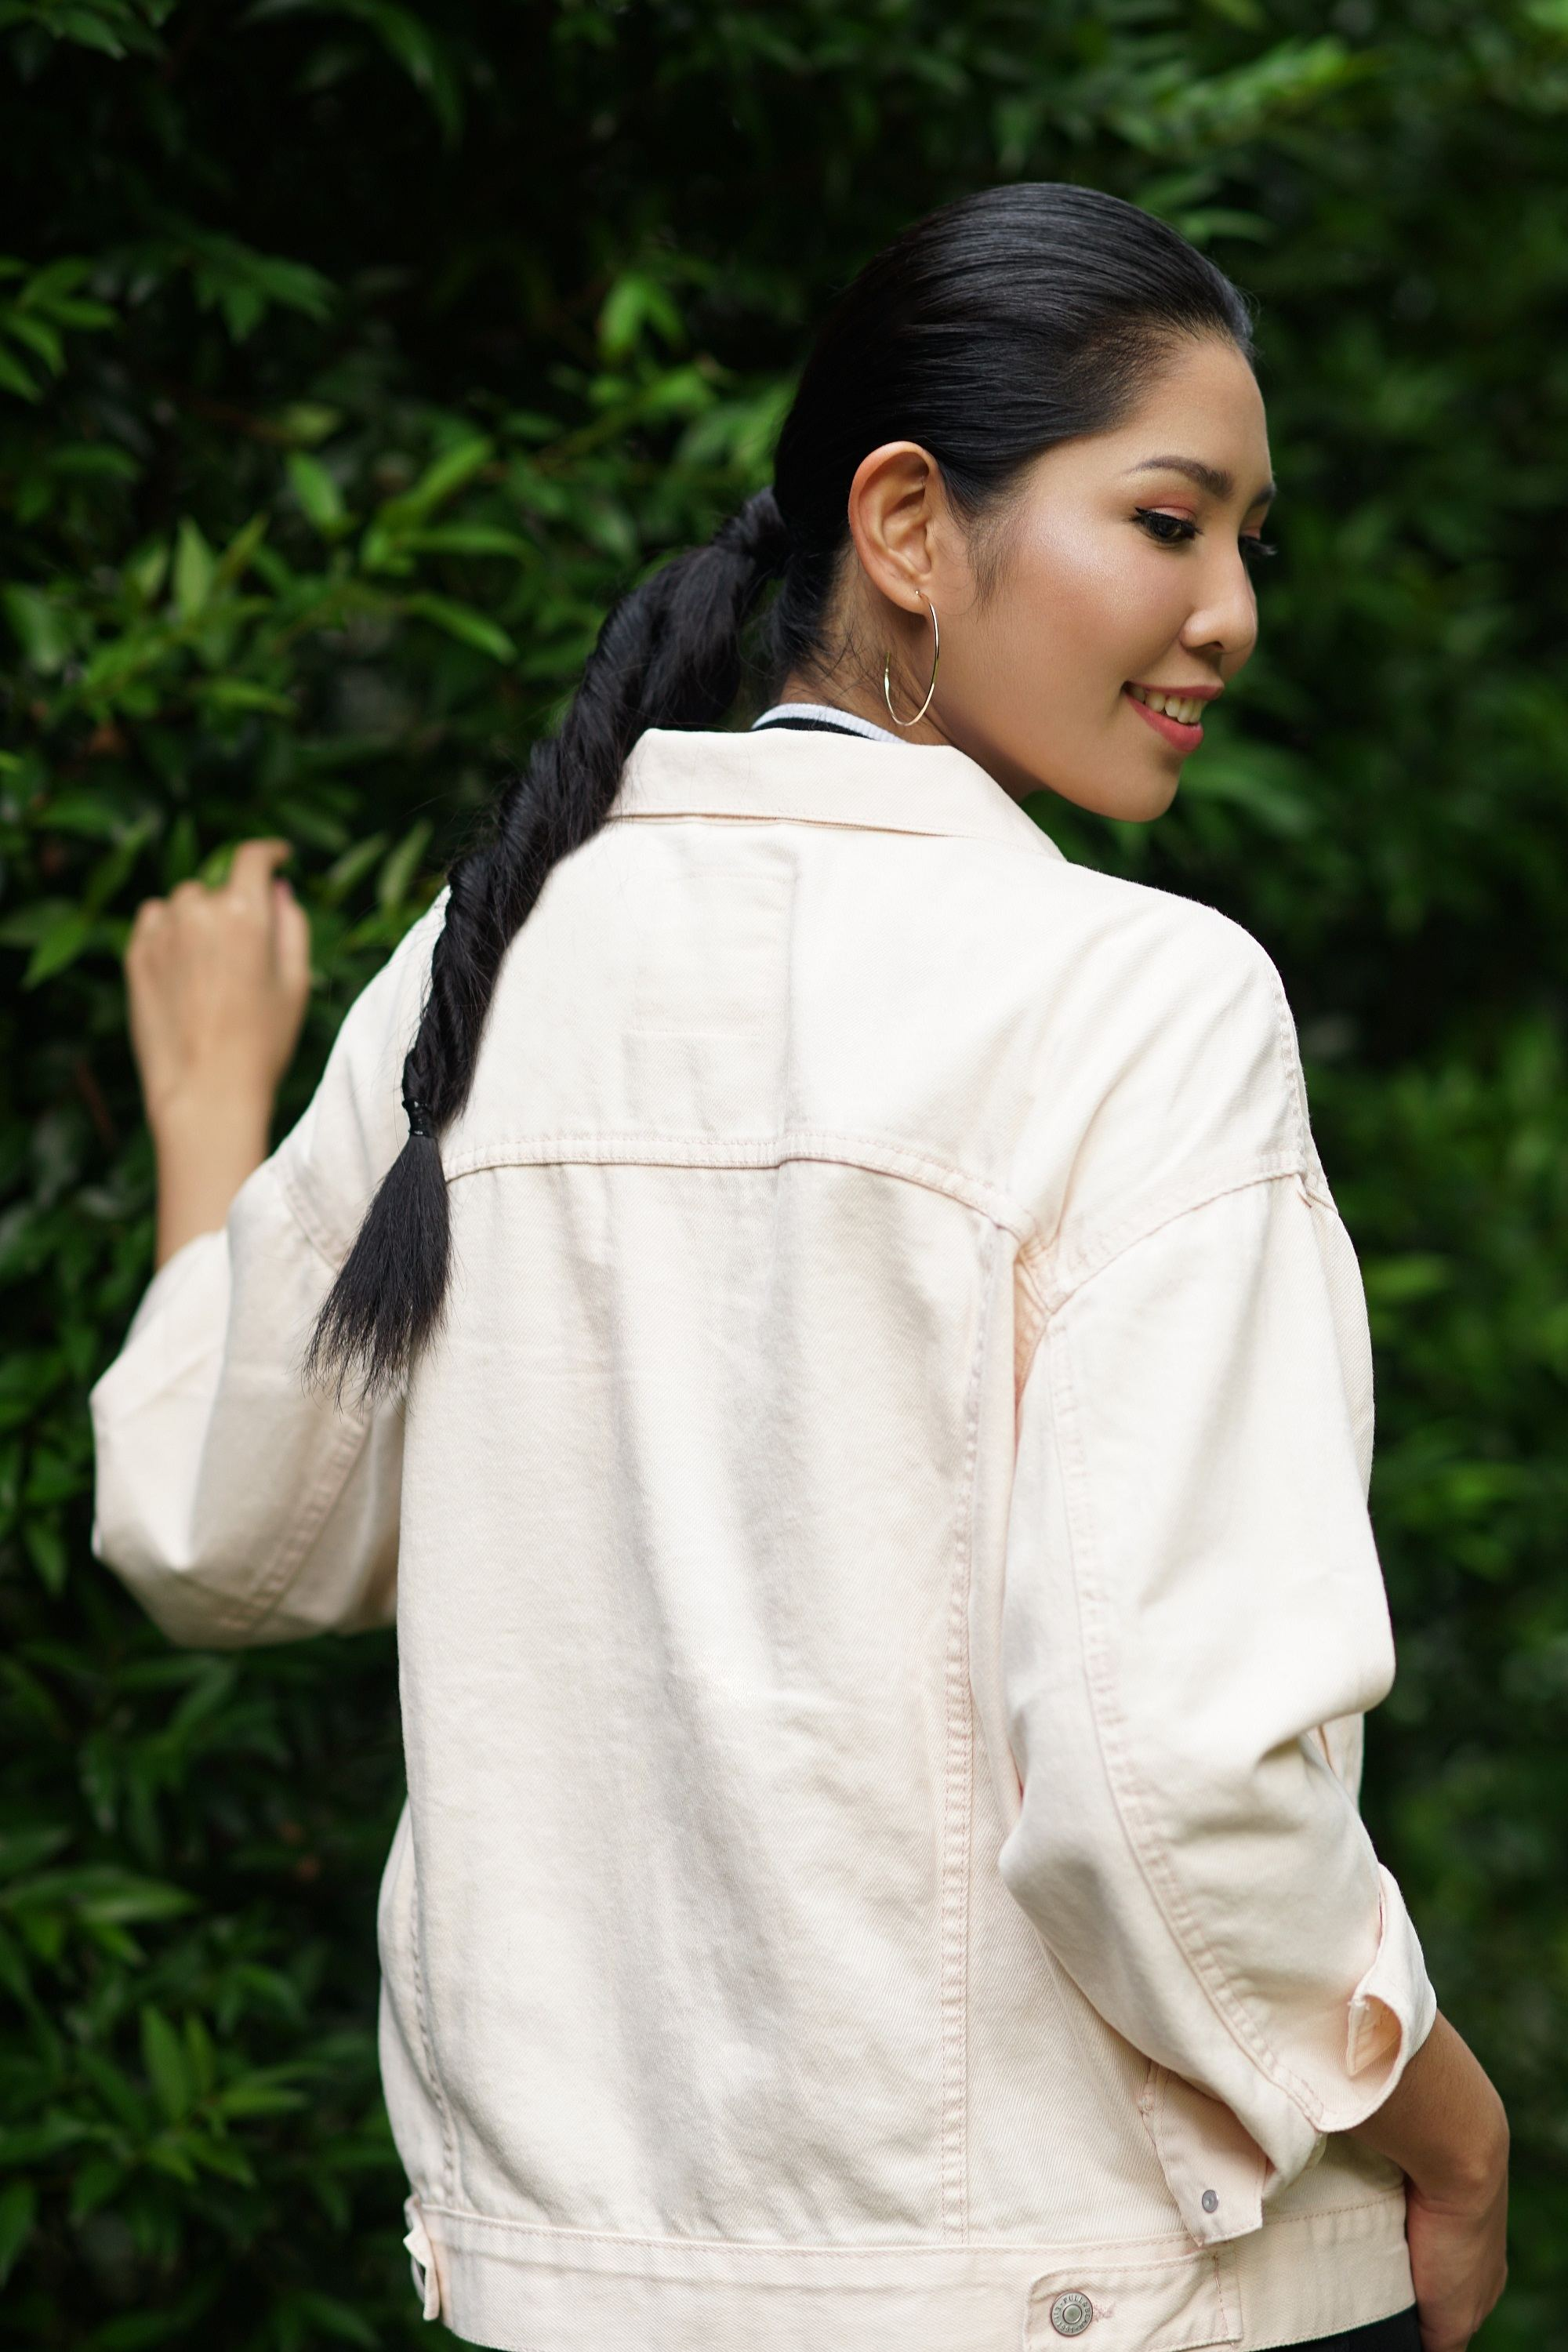 Asian woman wearing long-sleeved white polo with long black hair in double rope braid standing in front of leaves in outdoor location